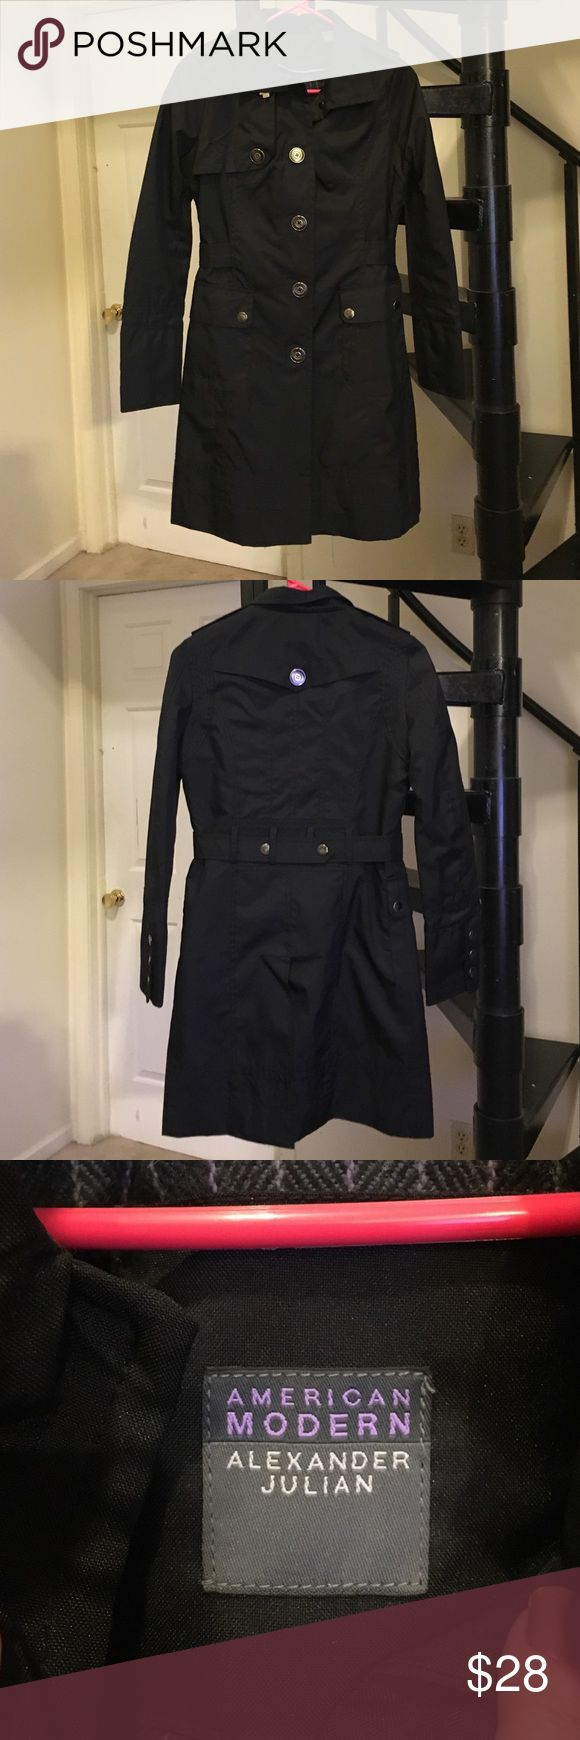 Black trench coat Super trendy trench coat! Worn once or twice, make an offer! Jackets & Coats Trench Coats